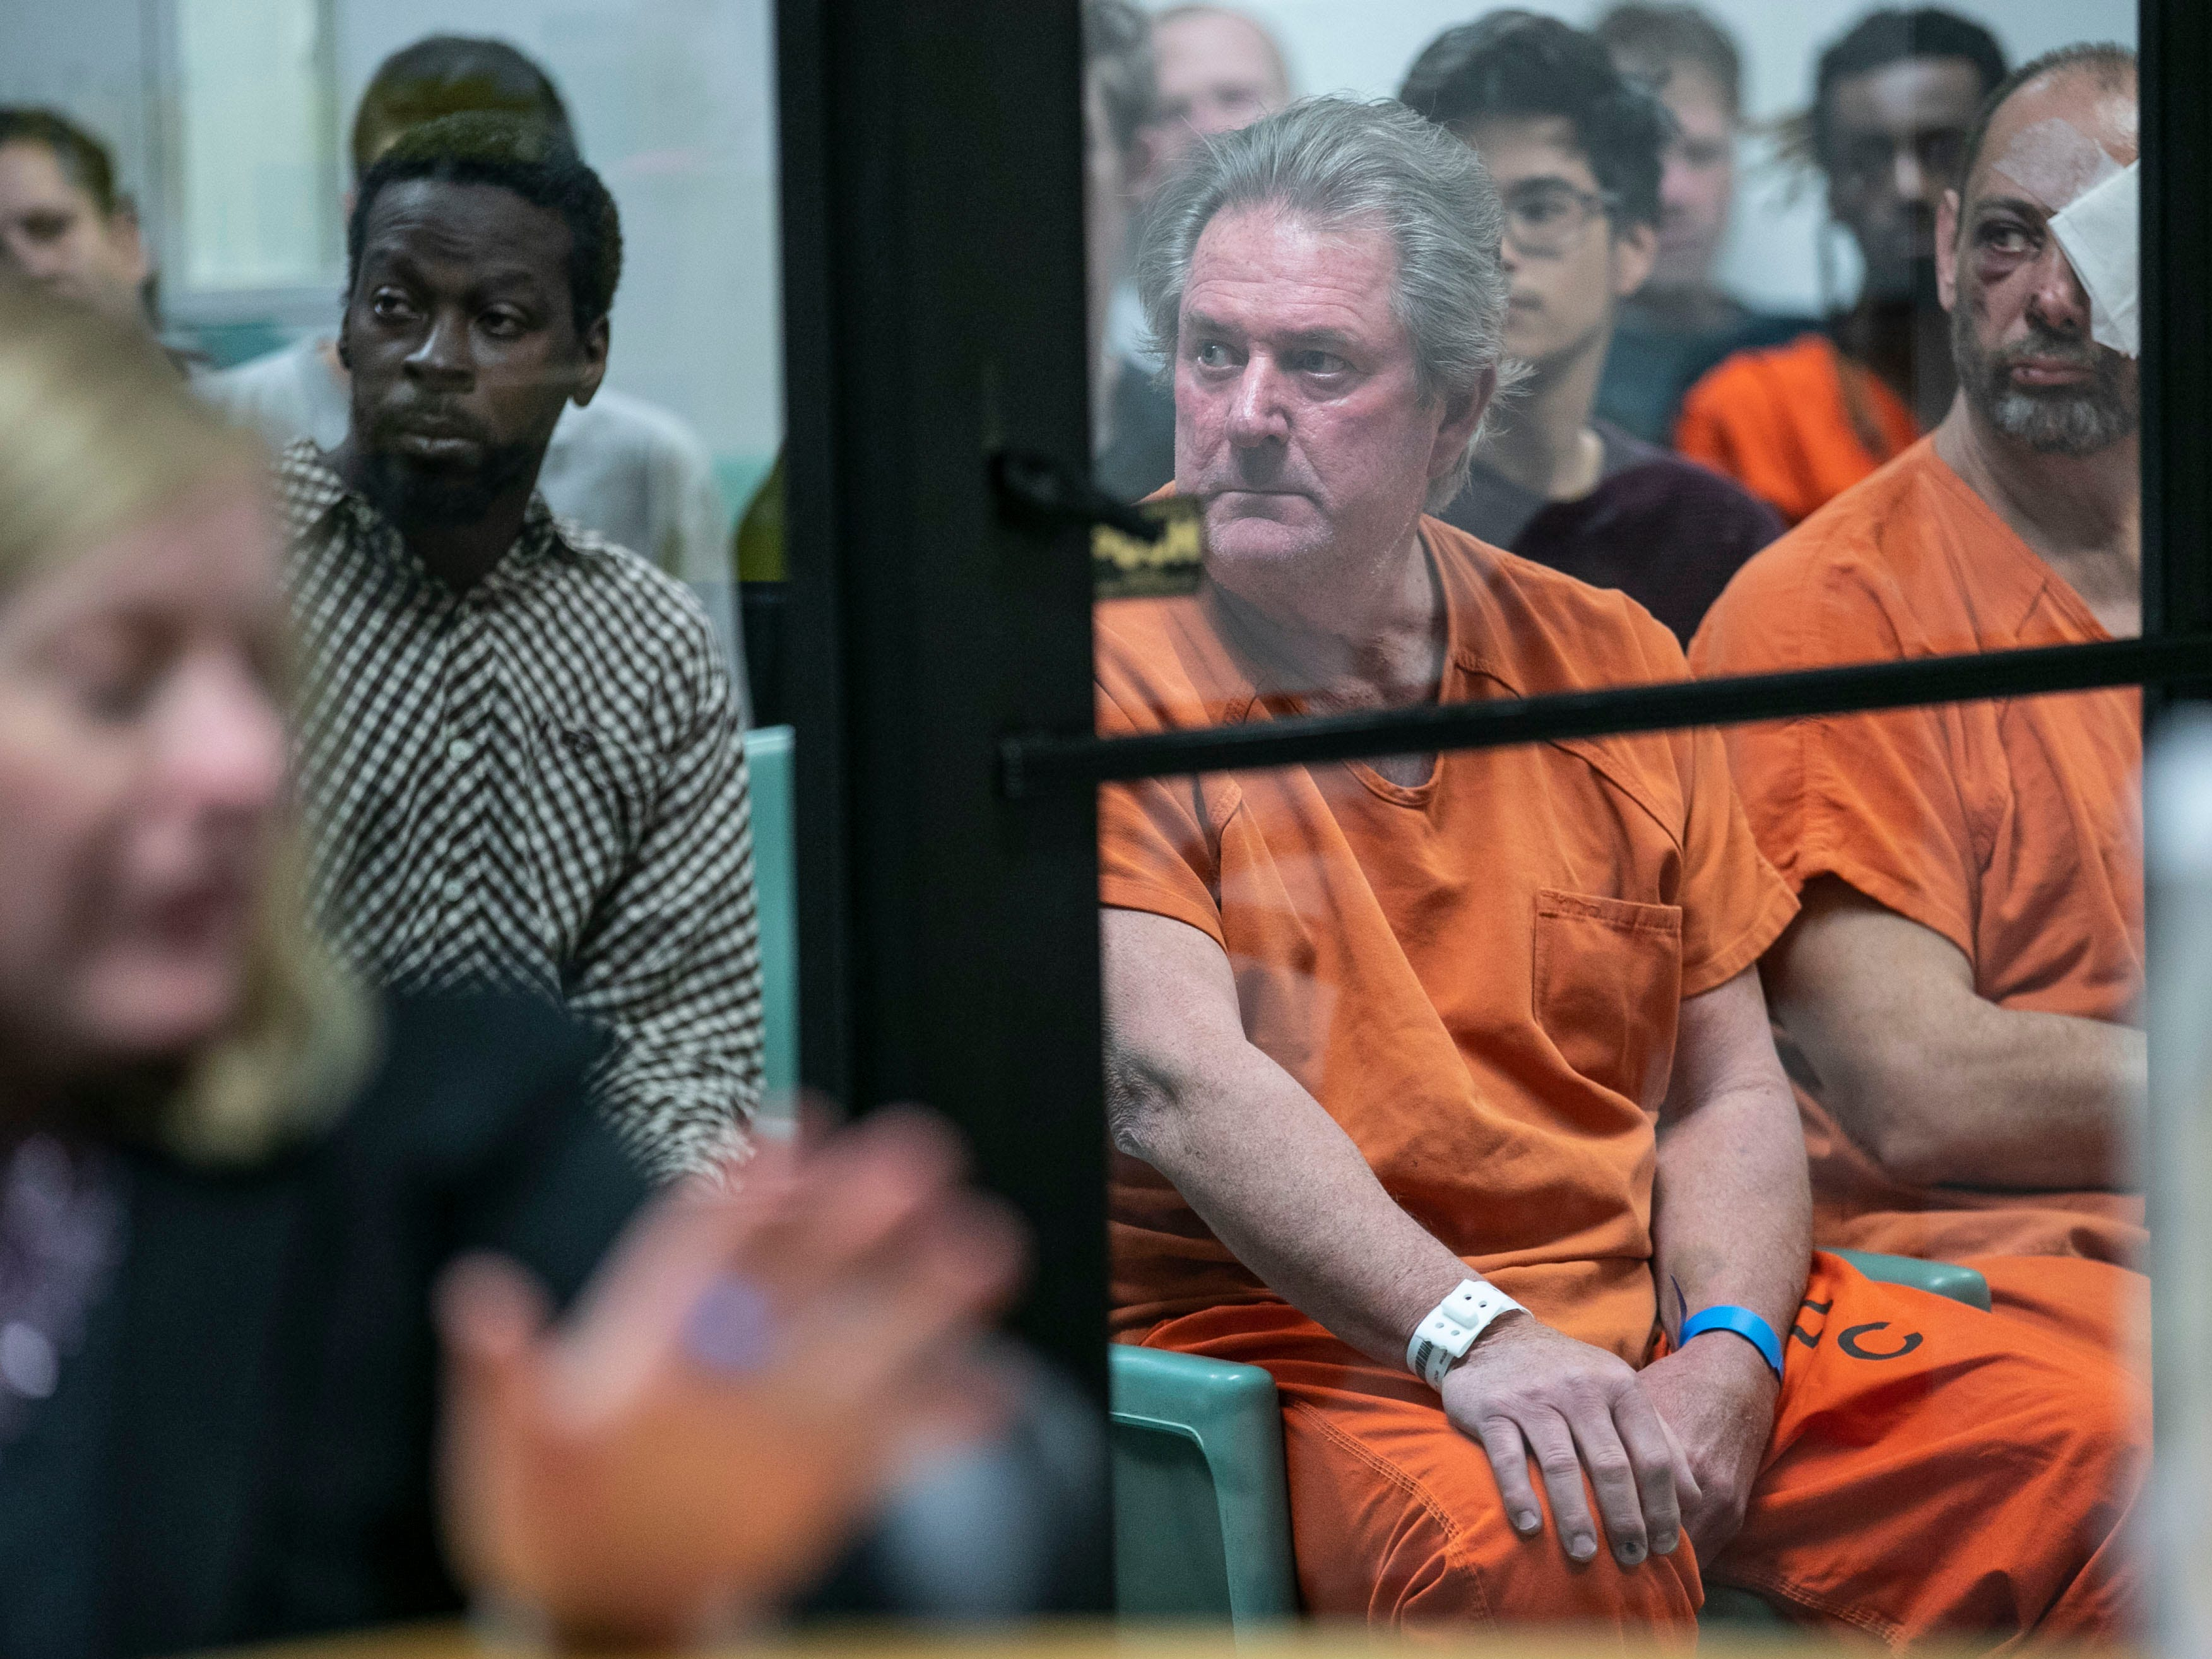 """Roger Burdette, 60, sits before arraignment at Metro Corrections Wednesday morning. A judge denied his attorney's request to lower the $200,000 bond. His next court date is set for January. Burdette is accused of killing Louisville Metro Police Detective Deidre """"Dee Dee"""" Mengedoht after ramming her stopped police car while he was driving an MSD semitruck on I-64 Christmas Eve. Dec. 26, 2018"""